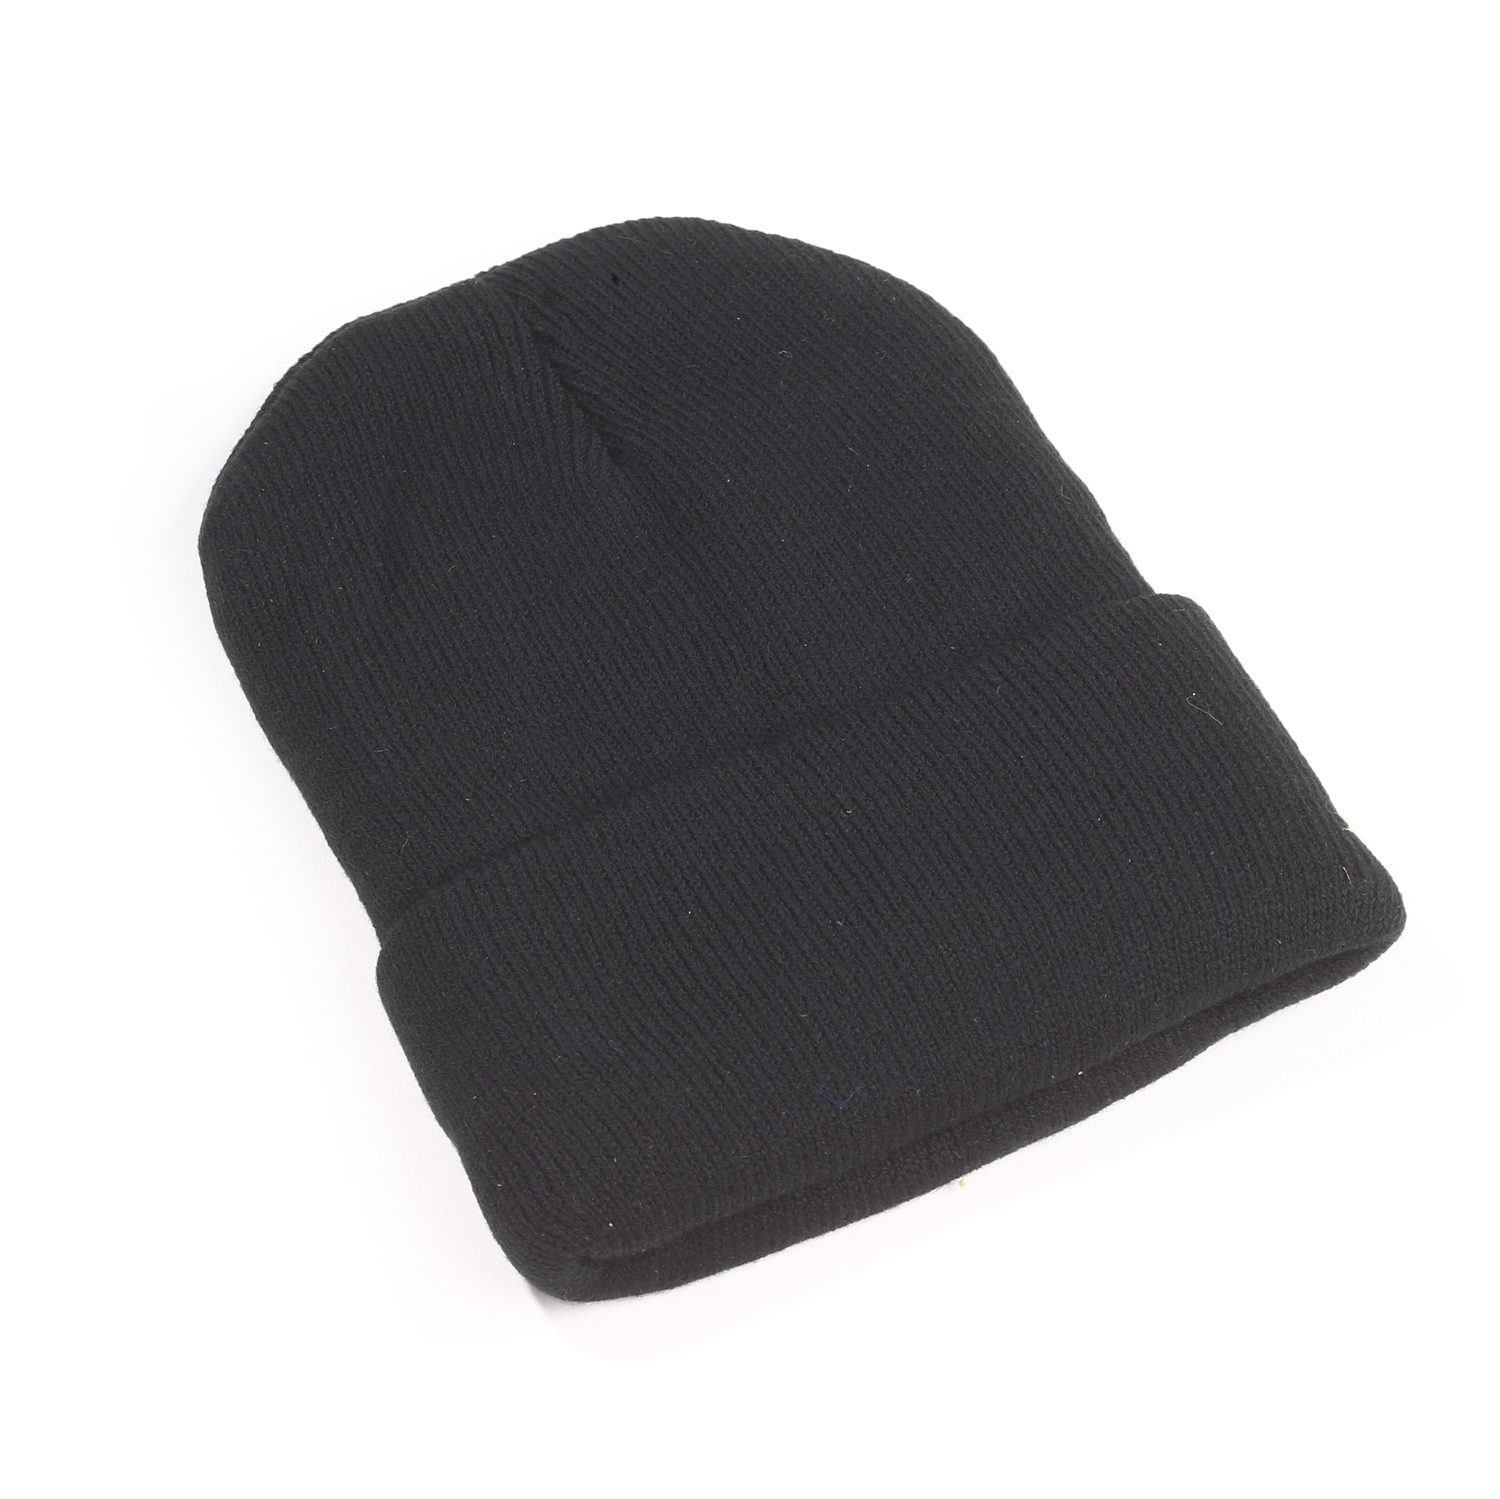 Wearguard 1984 Knit Hat with Thinsulate